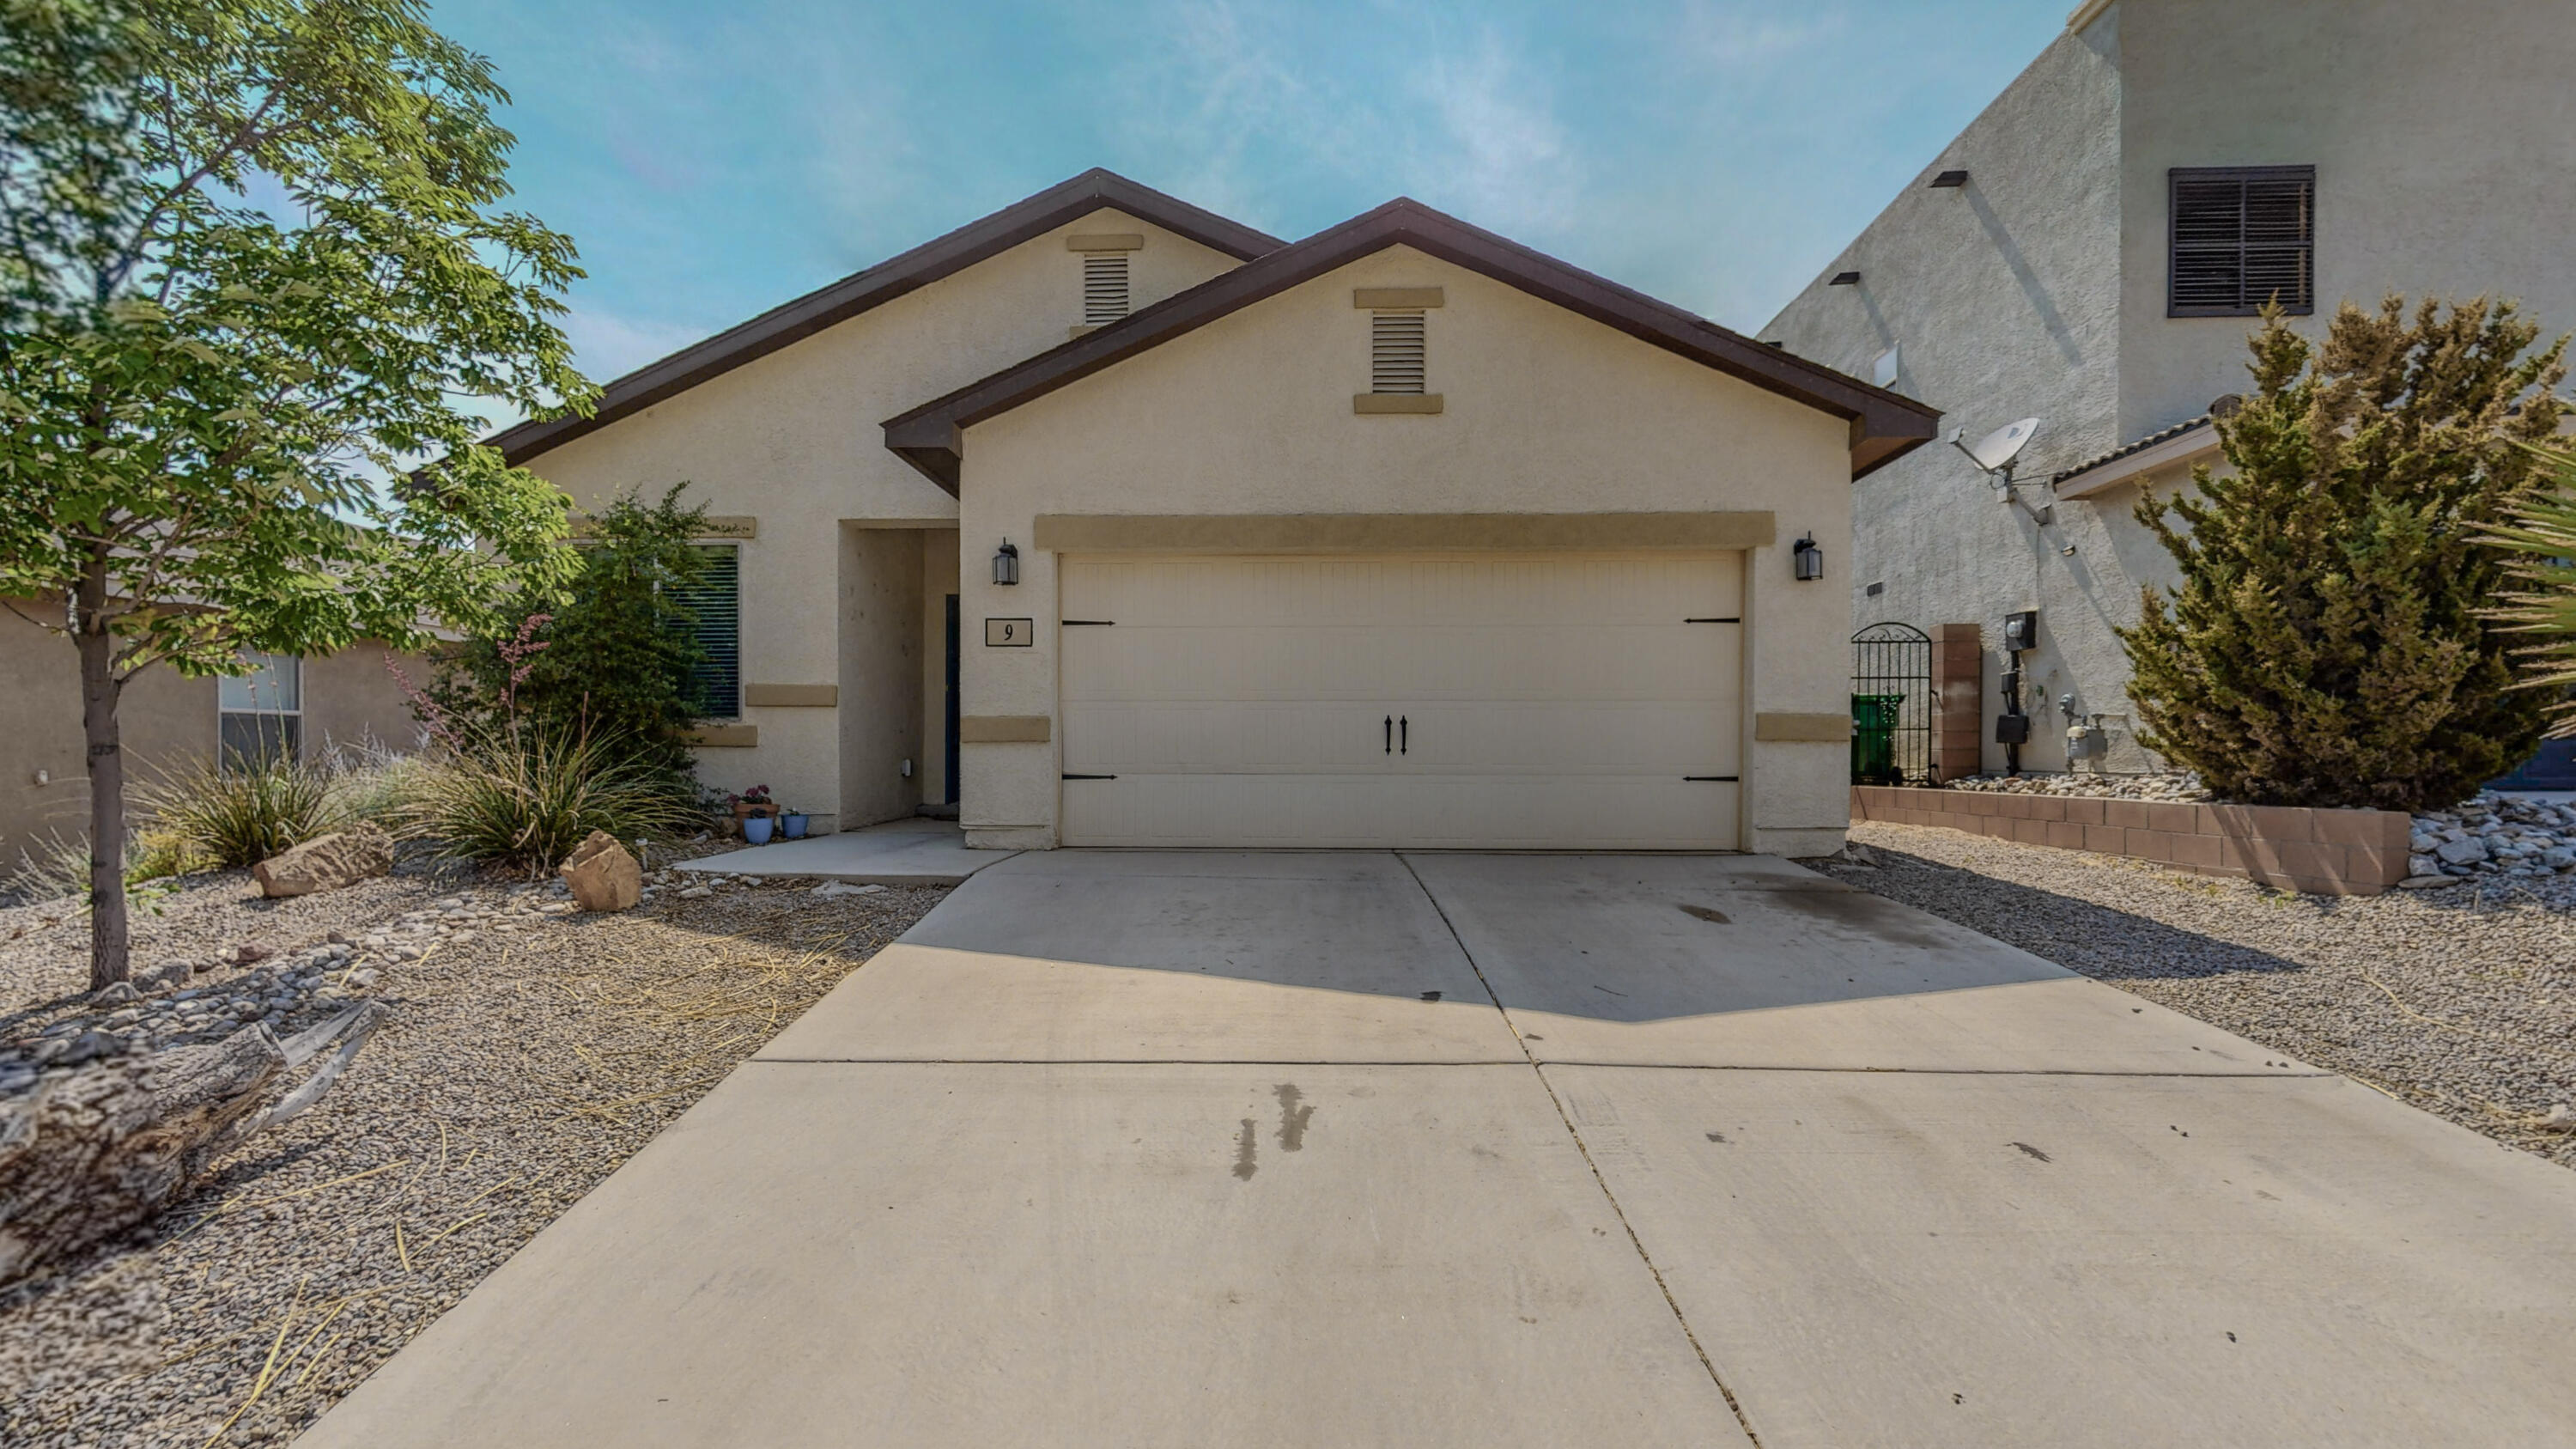 This one won't last. Open floorplan that boasts Stained maple cabinets, Granite countertops, all new flooring and new paint. Split floorplan puts one bedroom up front, perfect for a home office. All in a super quiet neighborhood.